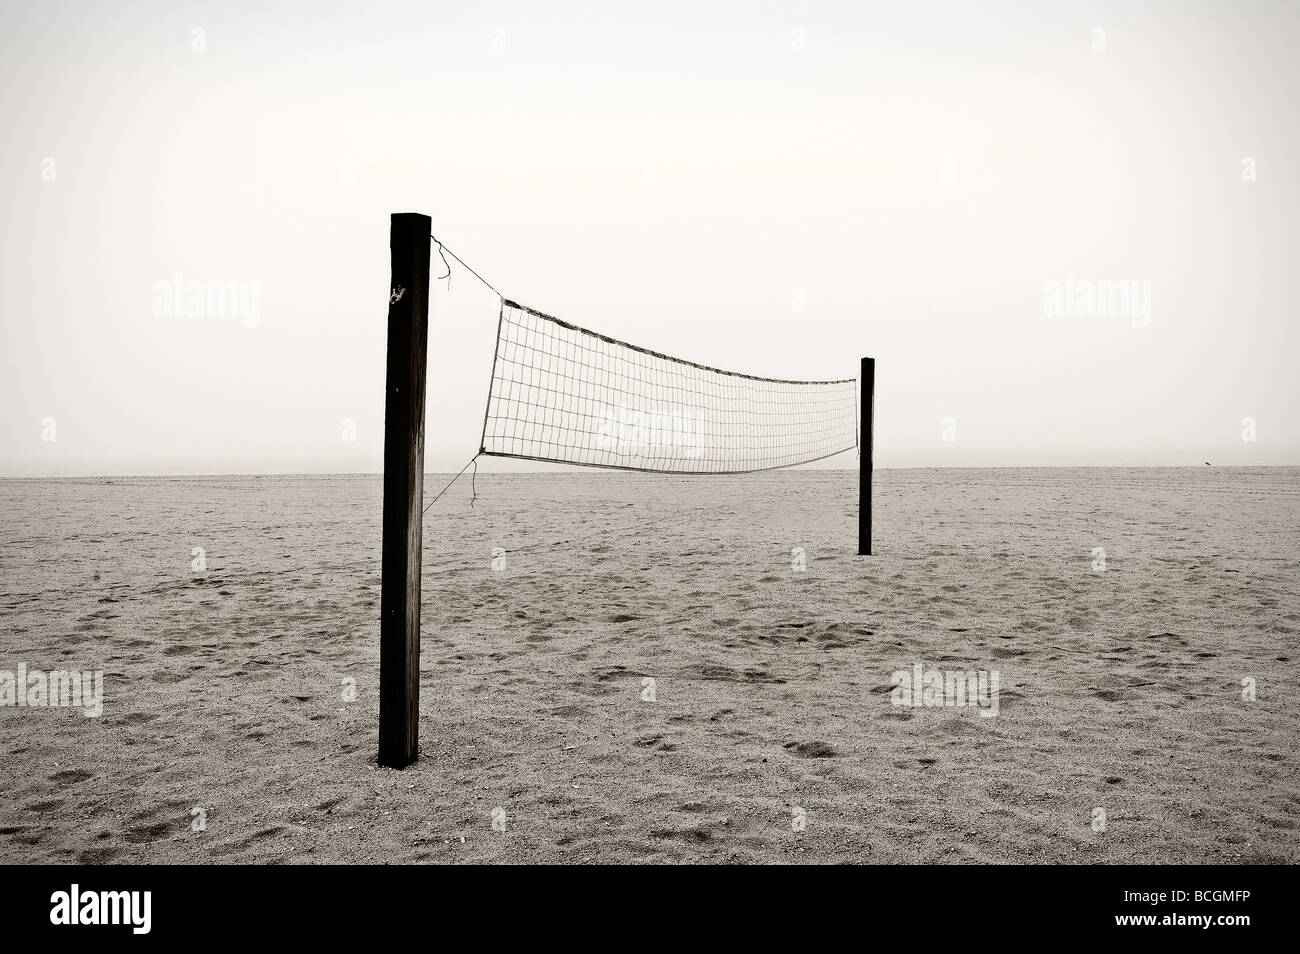 Filet de volley-ball de plage Photo Stock